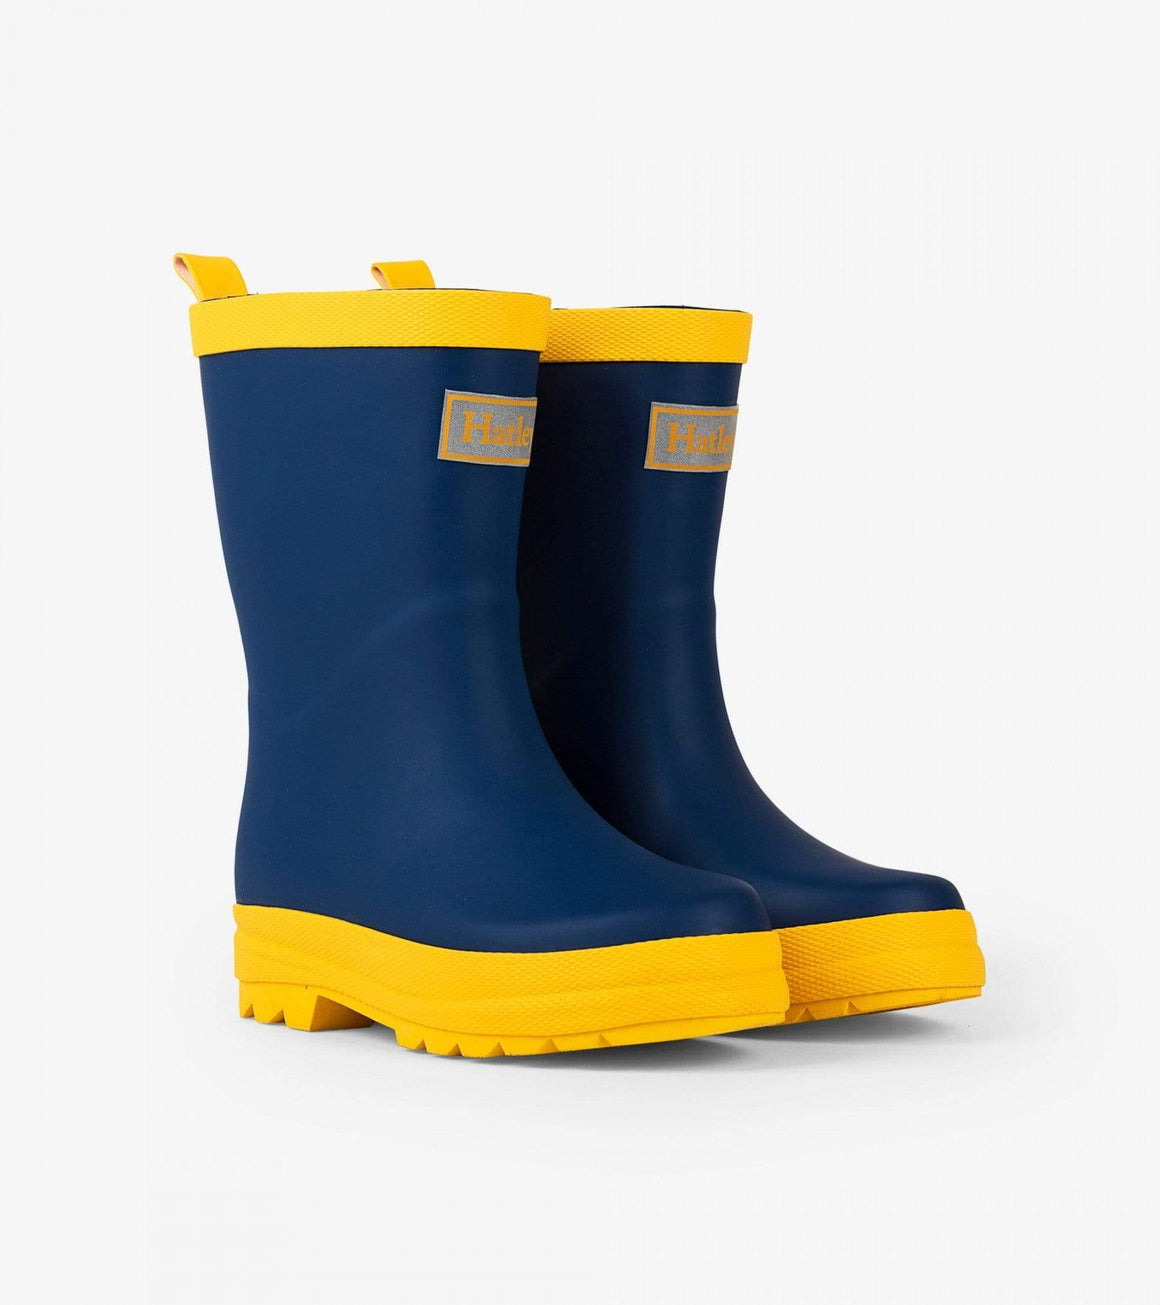 RB0NAVY346 - Rain Boots - Navy & Yellow (Toddler 4 - Youth 3) Rain Boots Hatley